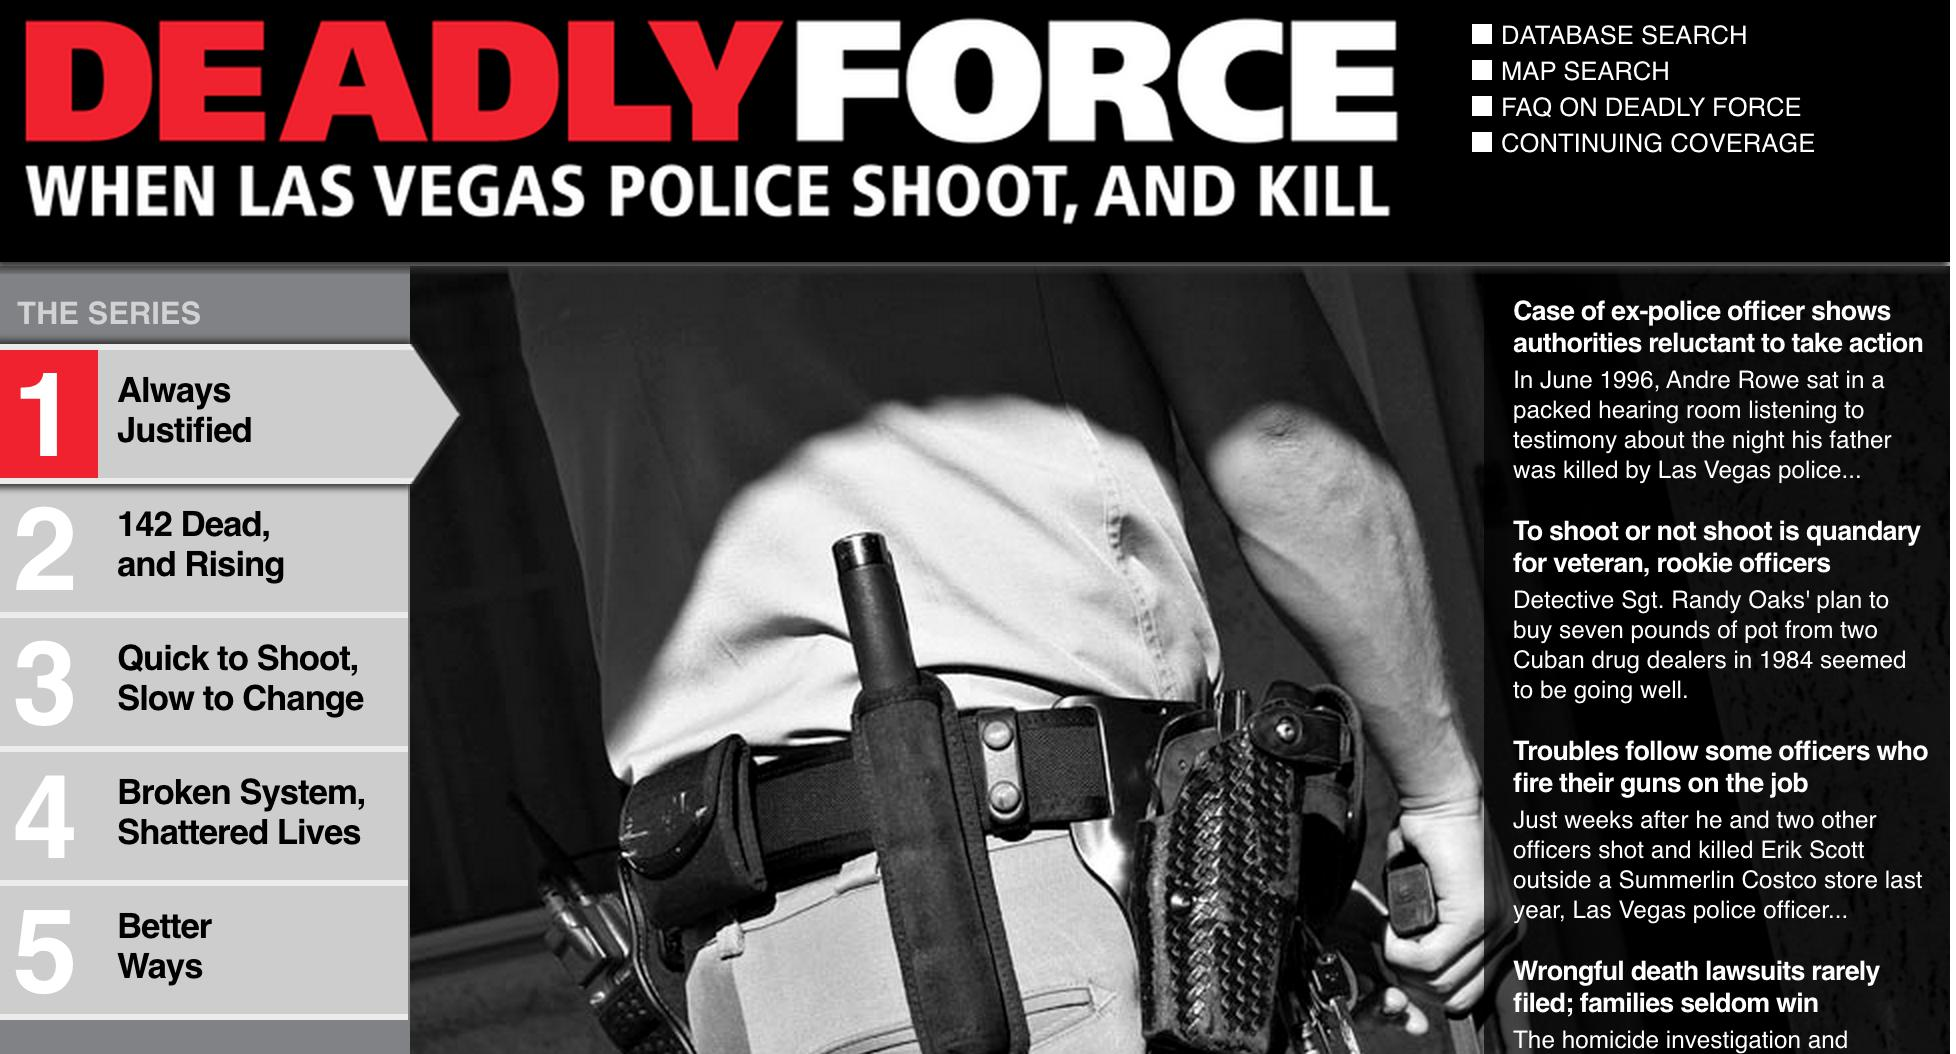 image Deadly Force: When Las Vegas Police Shoot, And Kill